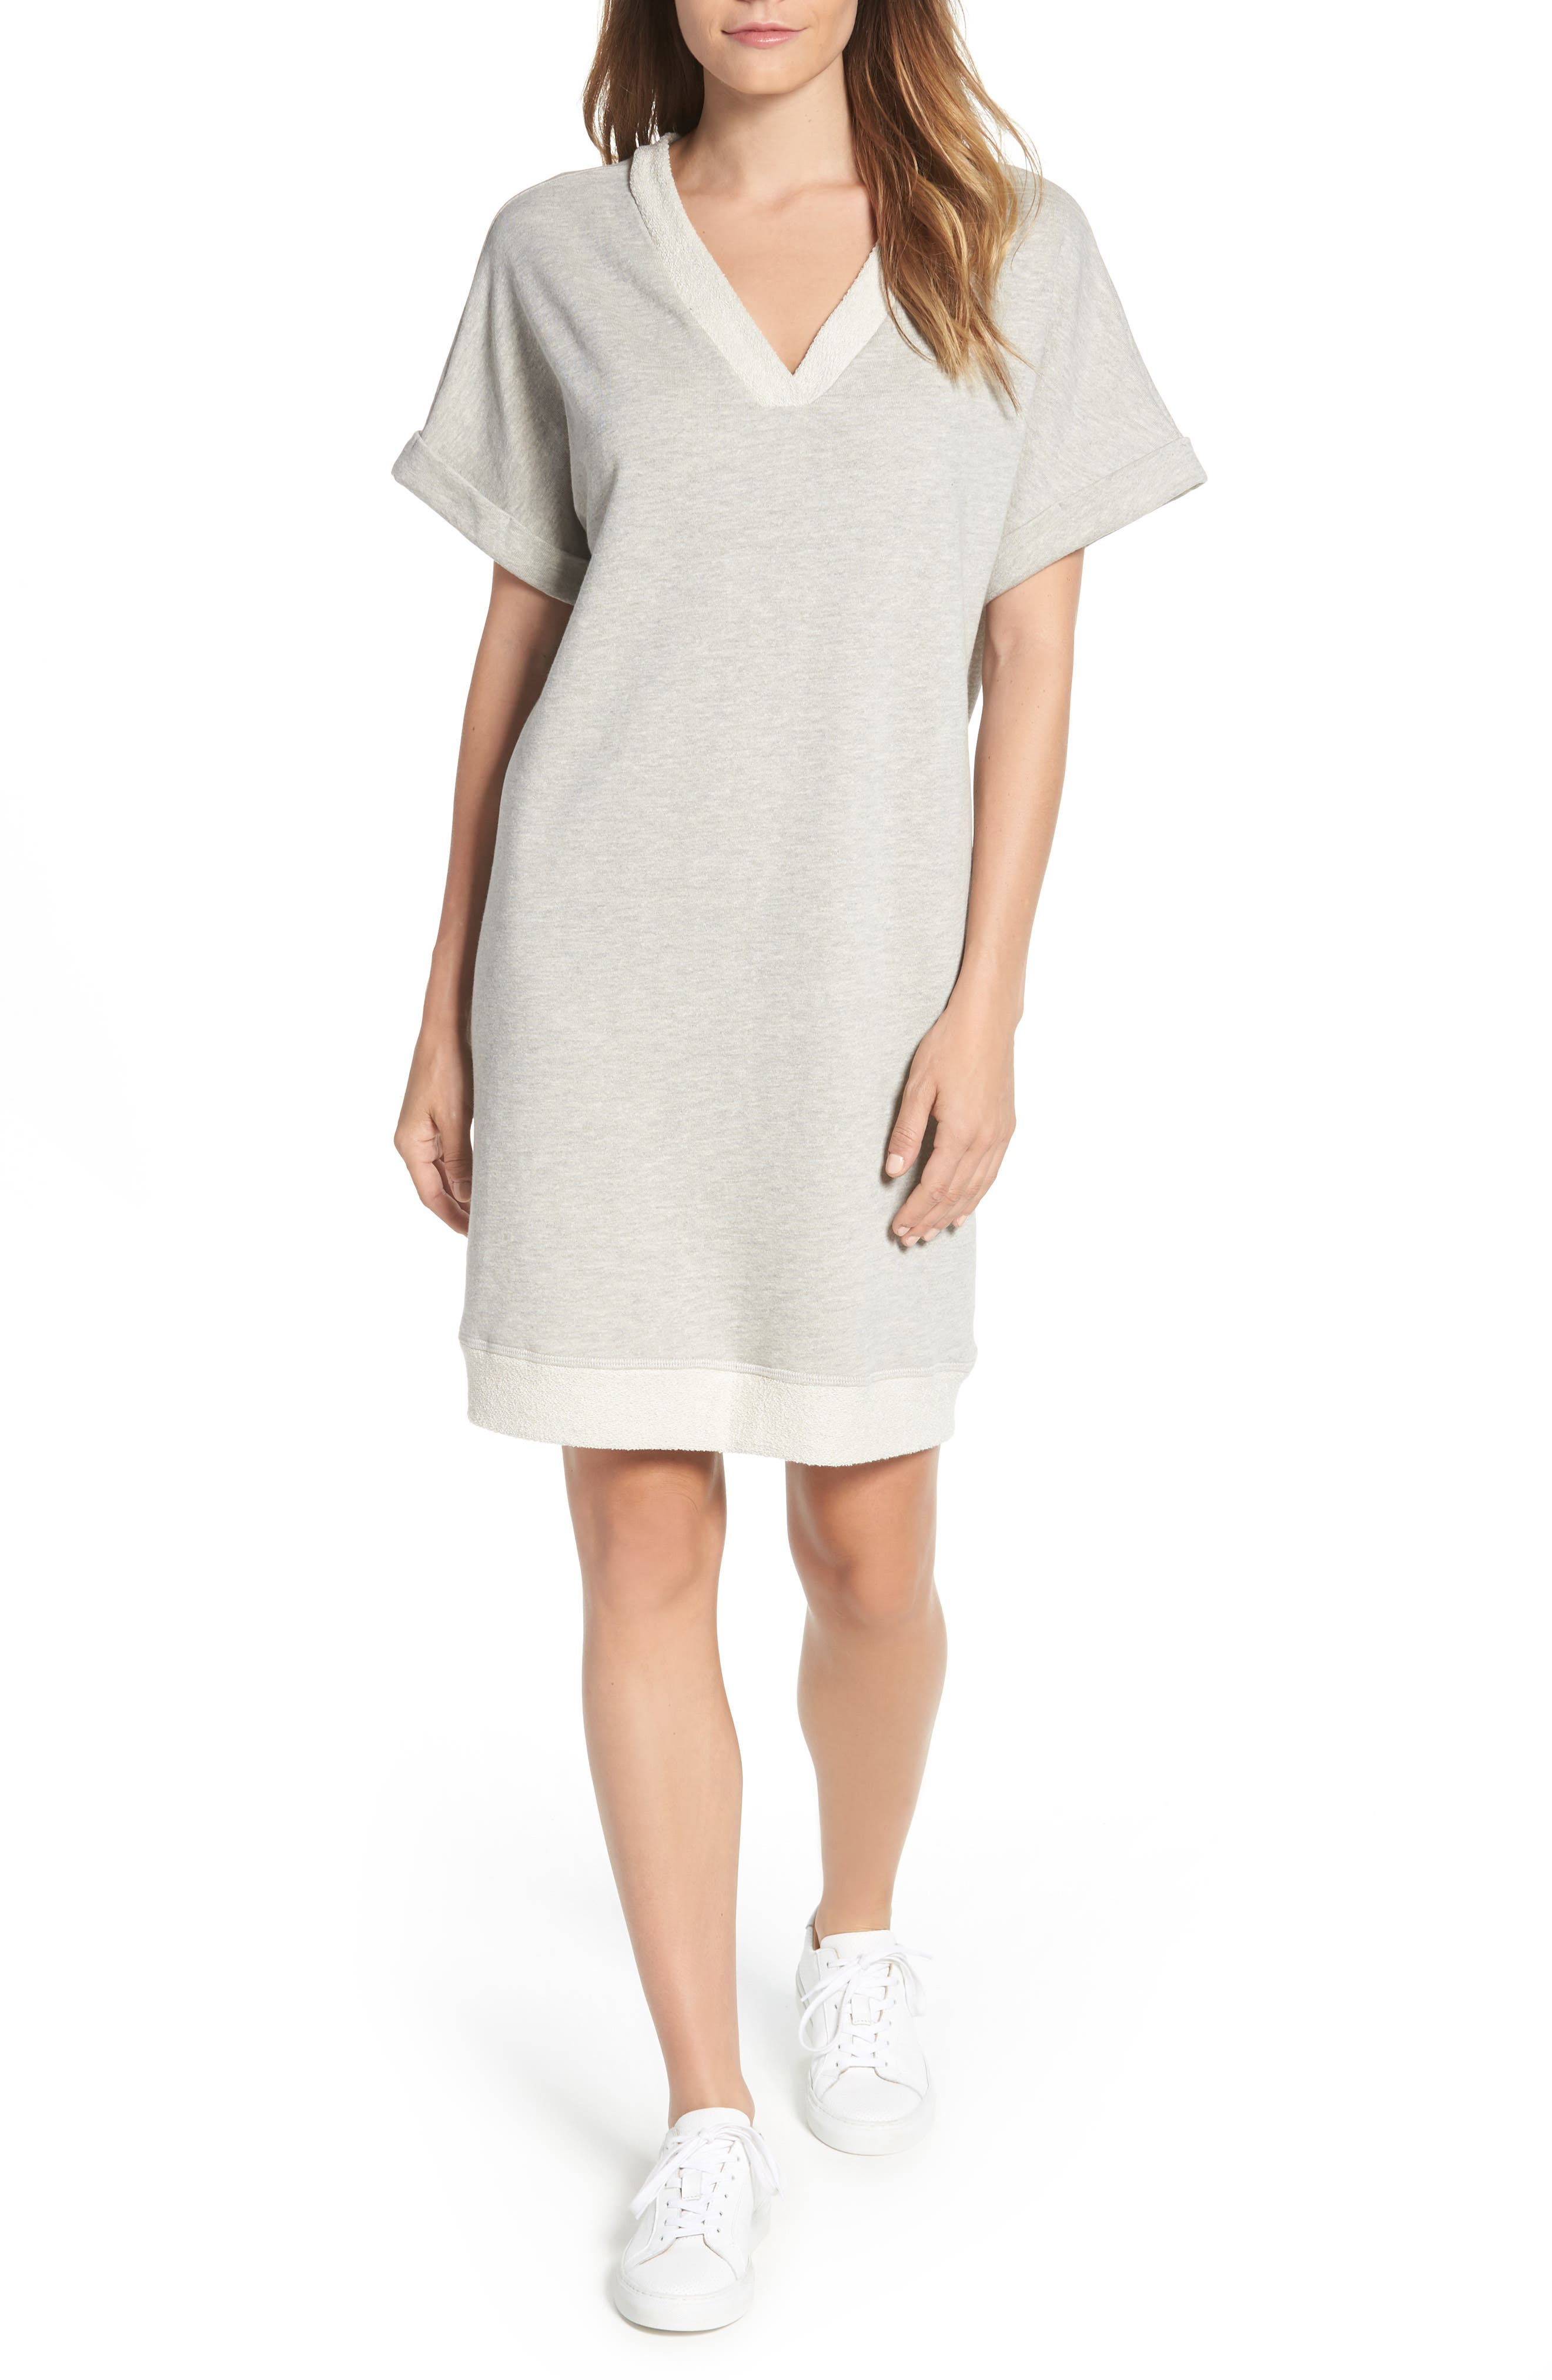 Off-Duty French Terry Dress,                             Main thumbnail 1, color,                             GREY HEATHER